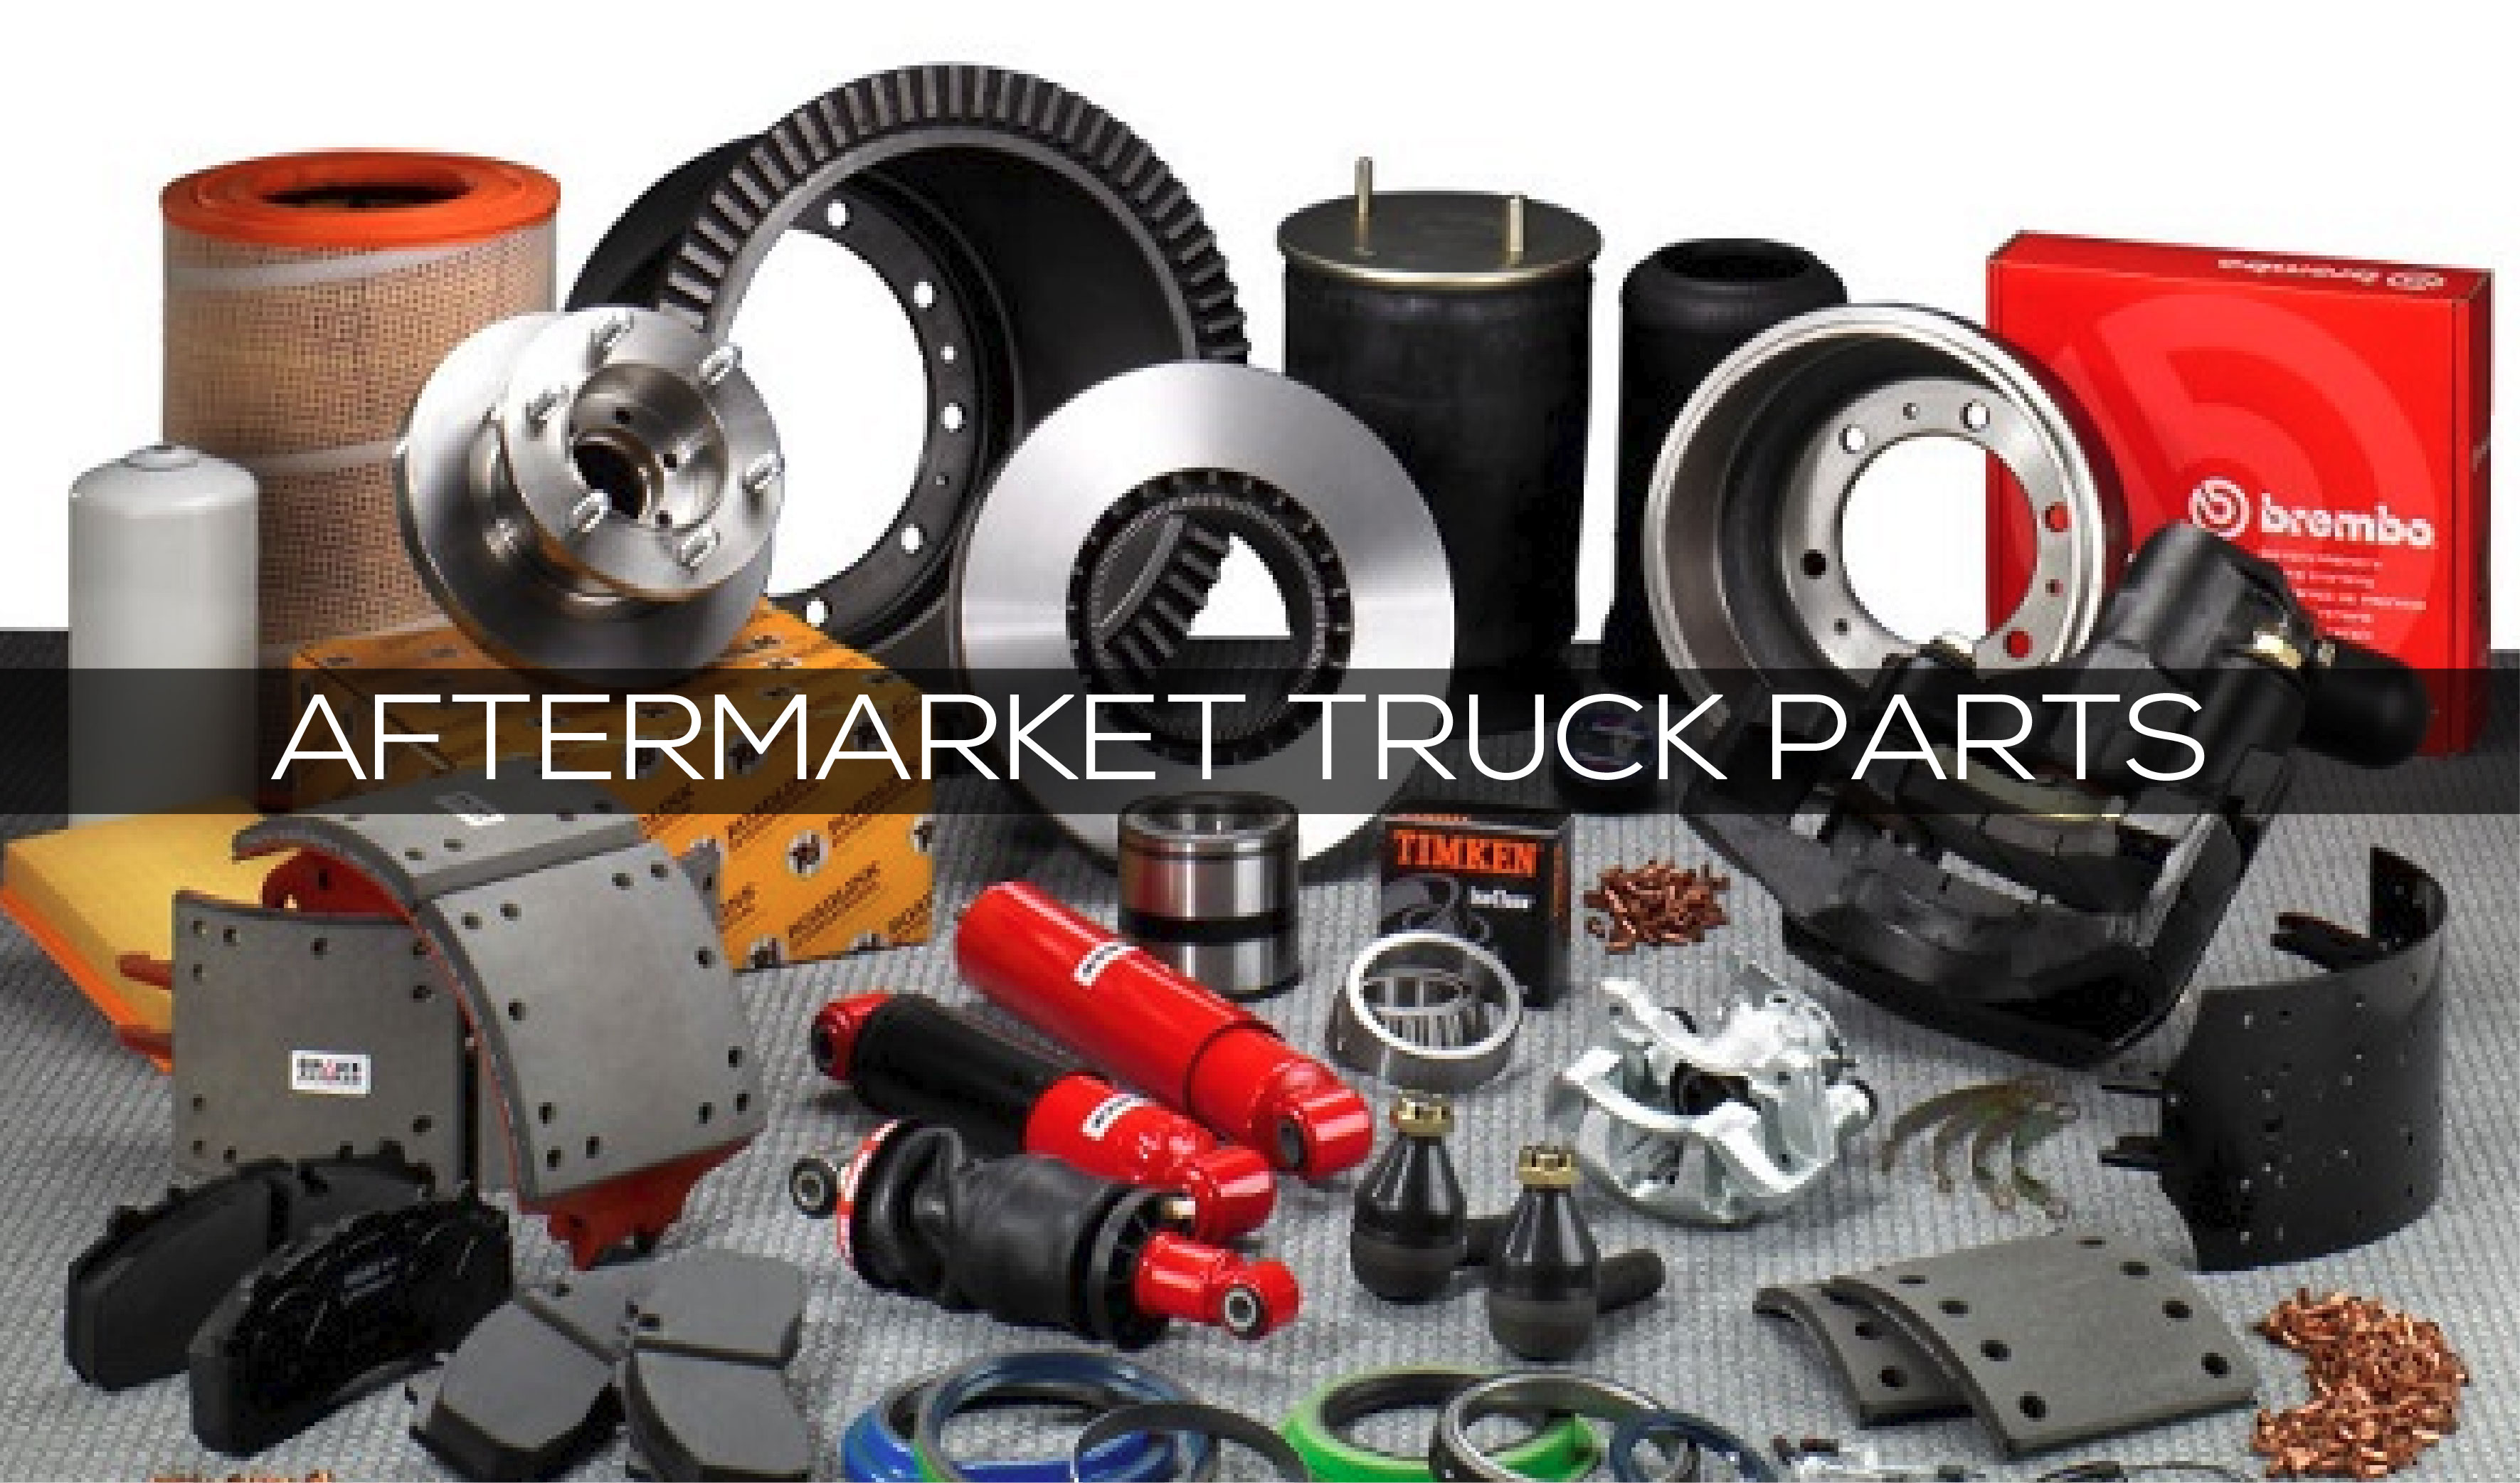 Why Demand for Aftermarket Truck Parts Is Increasing